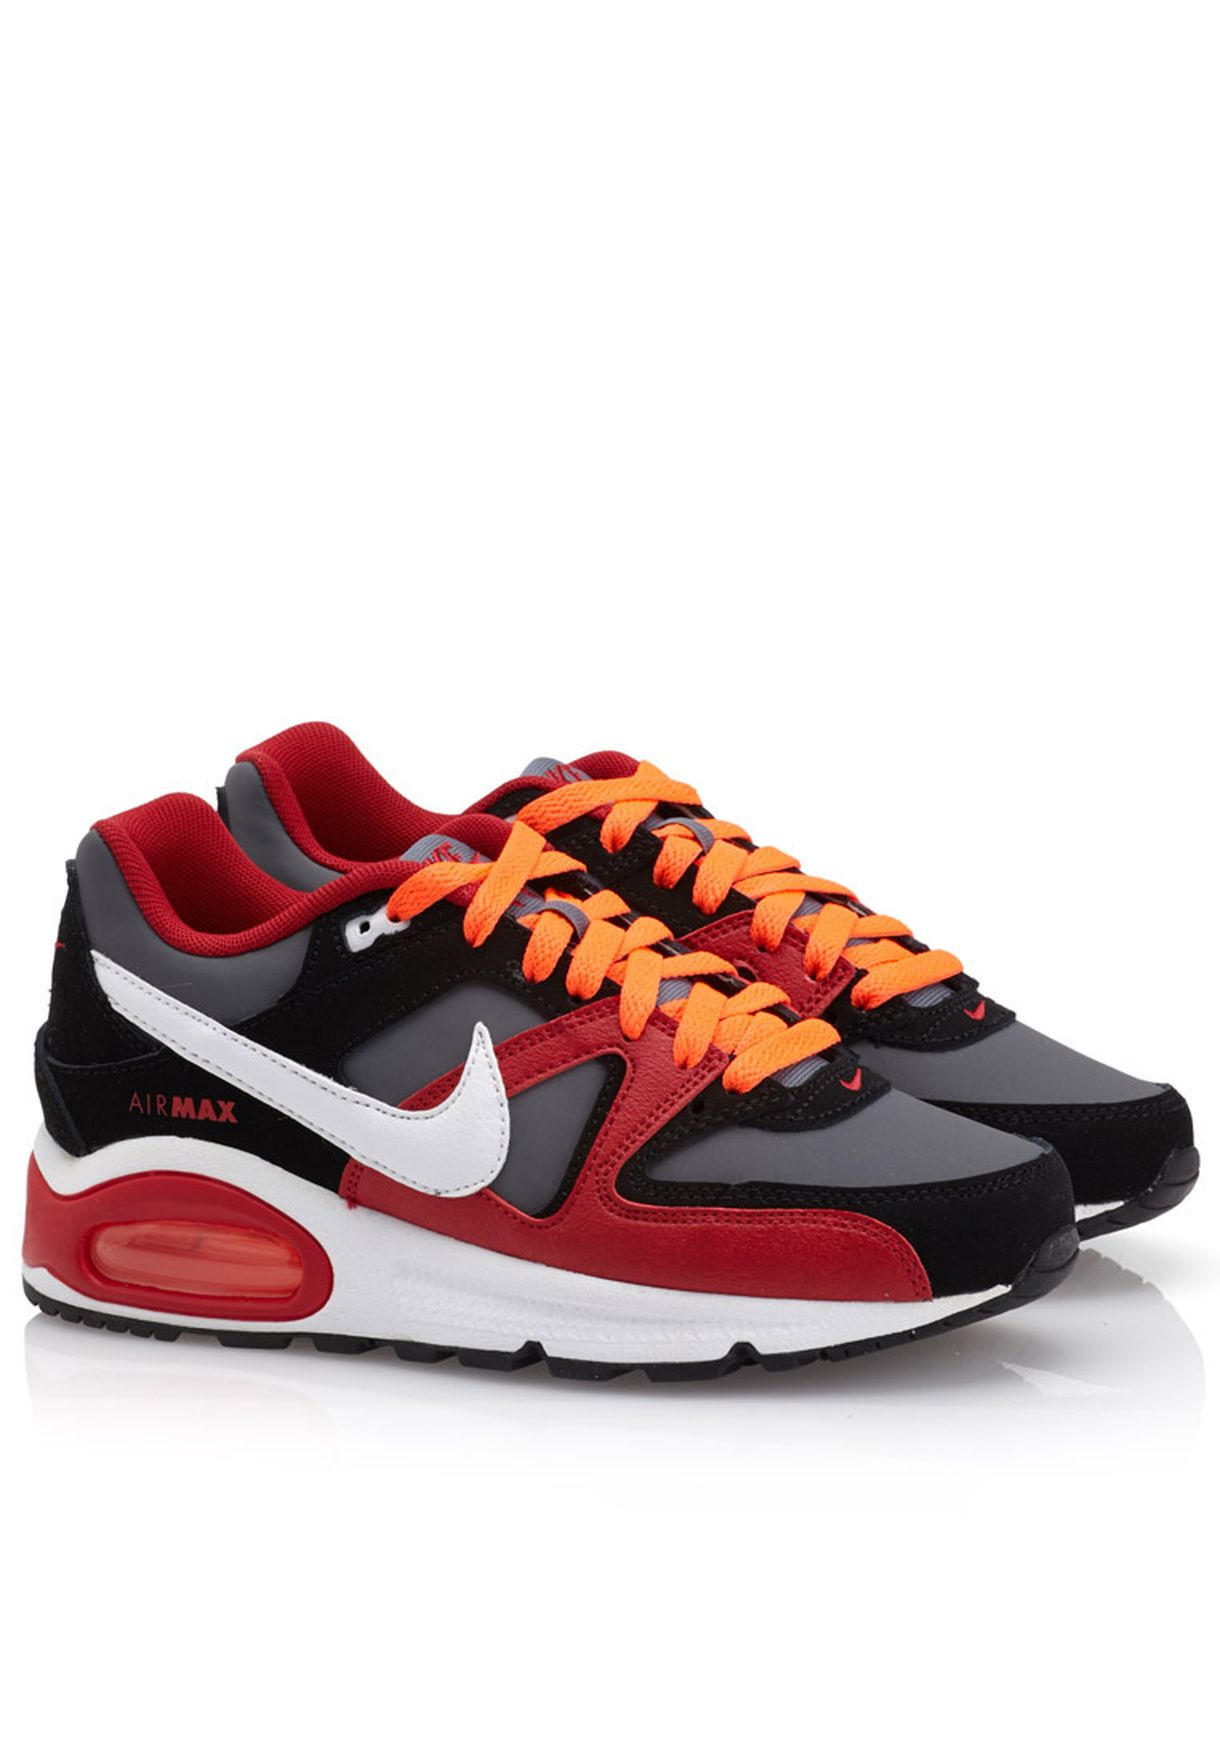 117ca5abd86 ... top quality shop nike black air max command 407759 044 for kids in  kuwait ni727sh55cts 63e2a